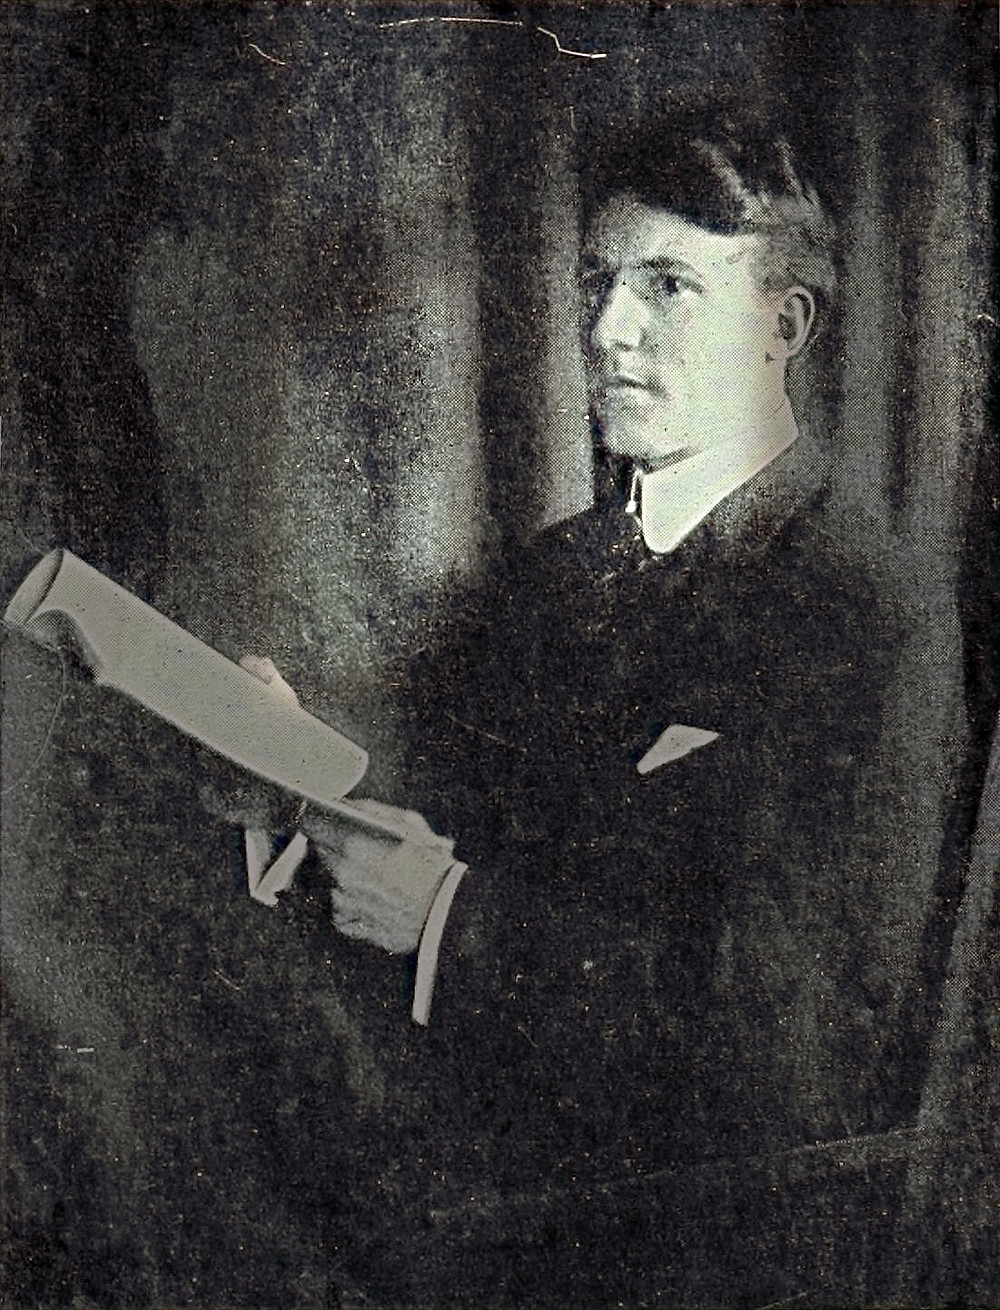 Hereward Hubert Lavington Carrington (October 17, 1880 - December 26, 1958) was a Jersey-born American parapsychologist and spiritualist, one of the leading figures in the field of psychical research during his lifetime.